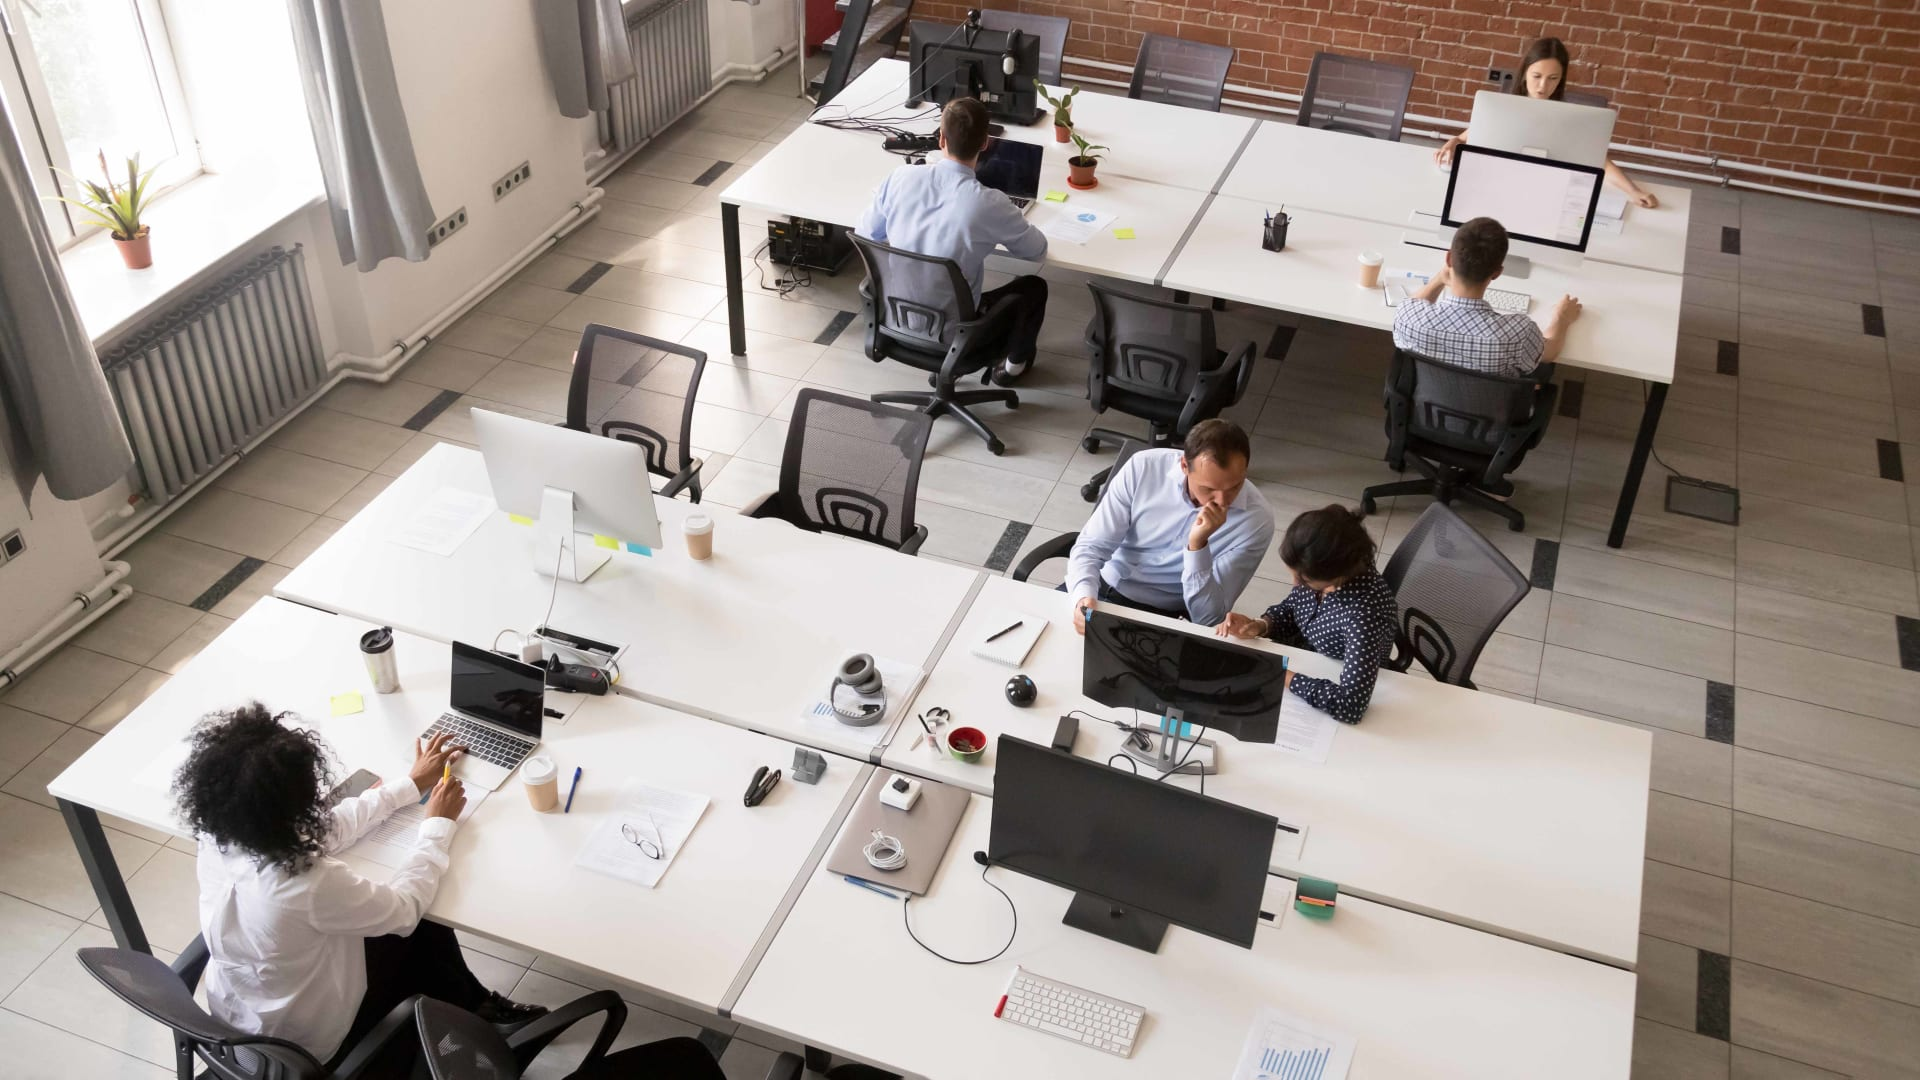 How to Give Negative Feedback in an Open Office